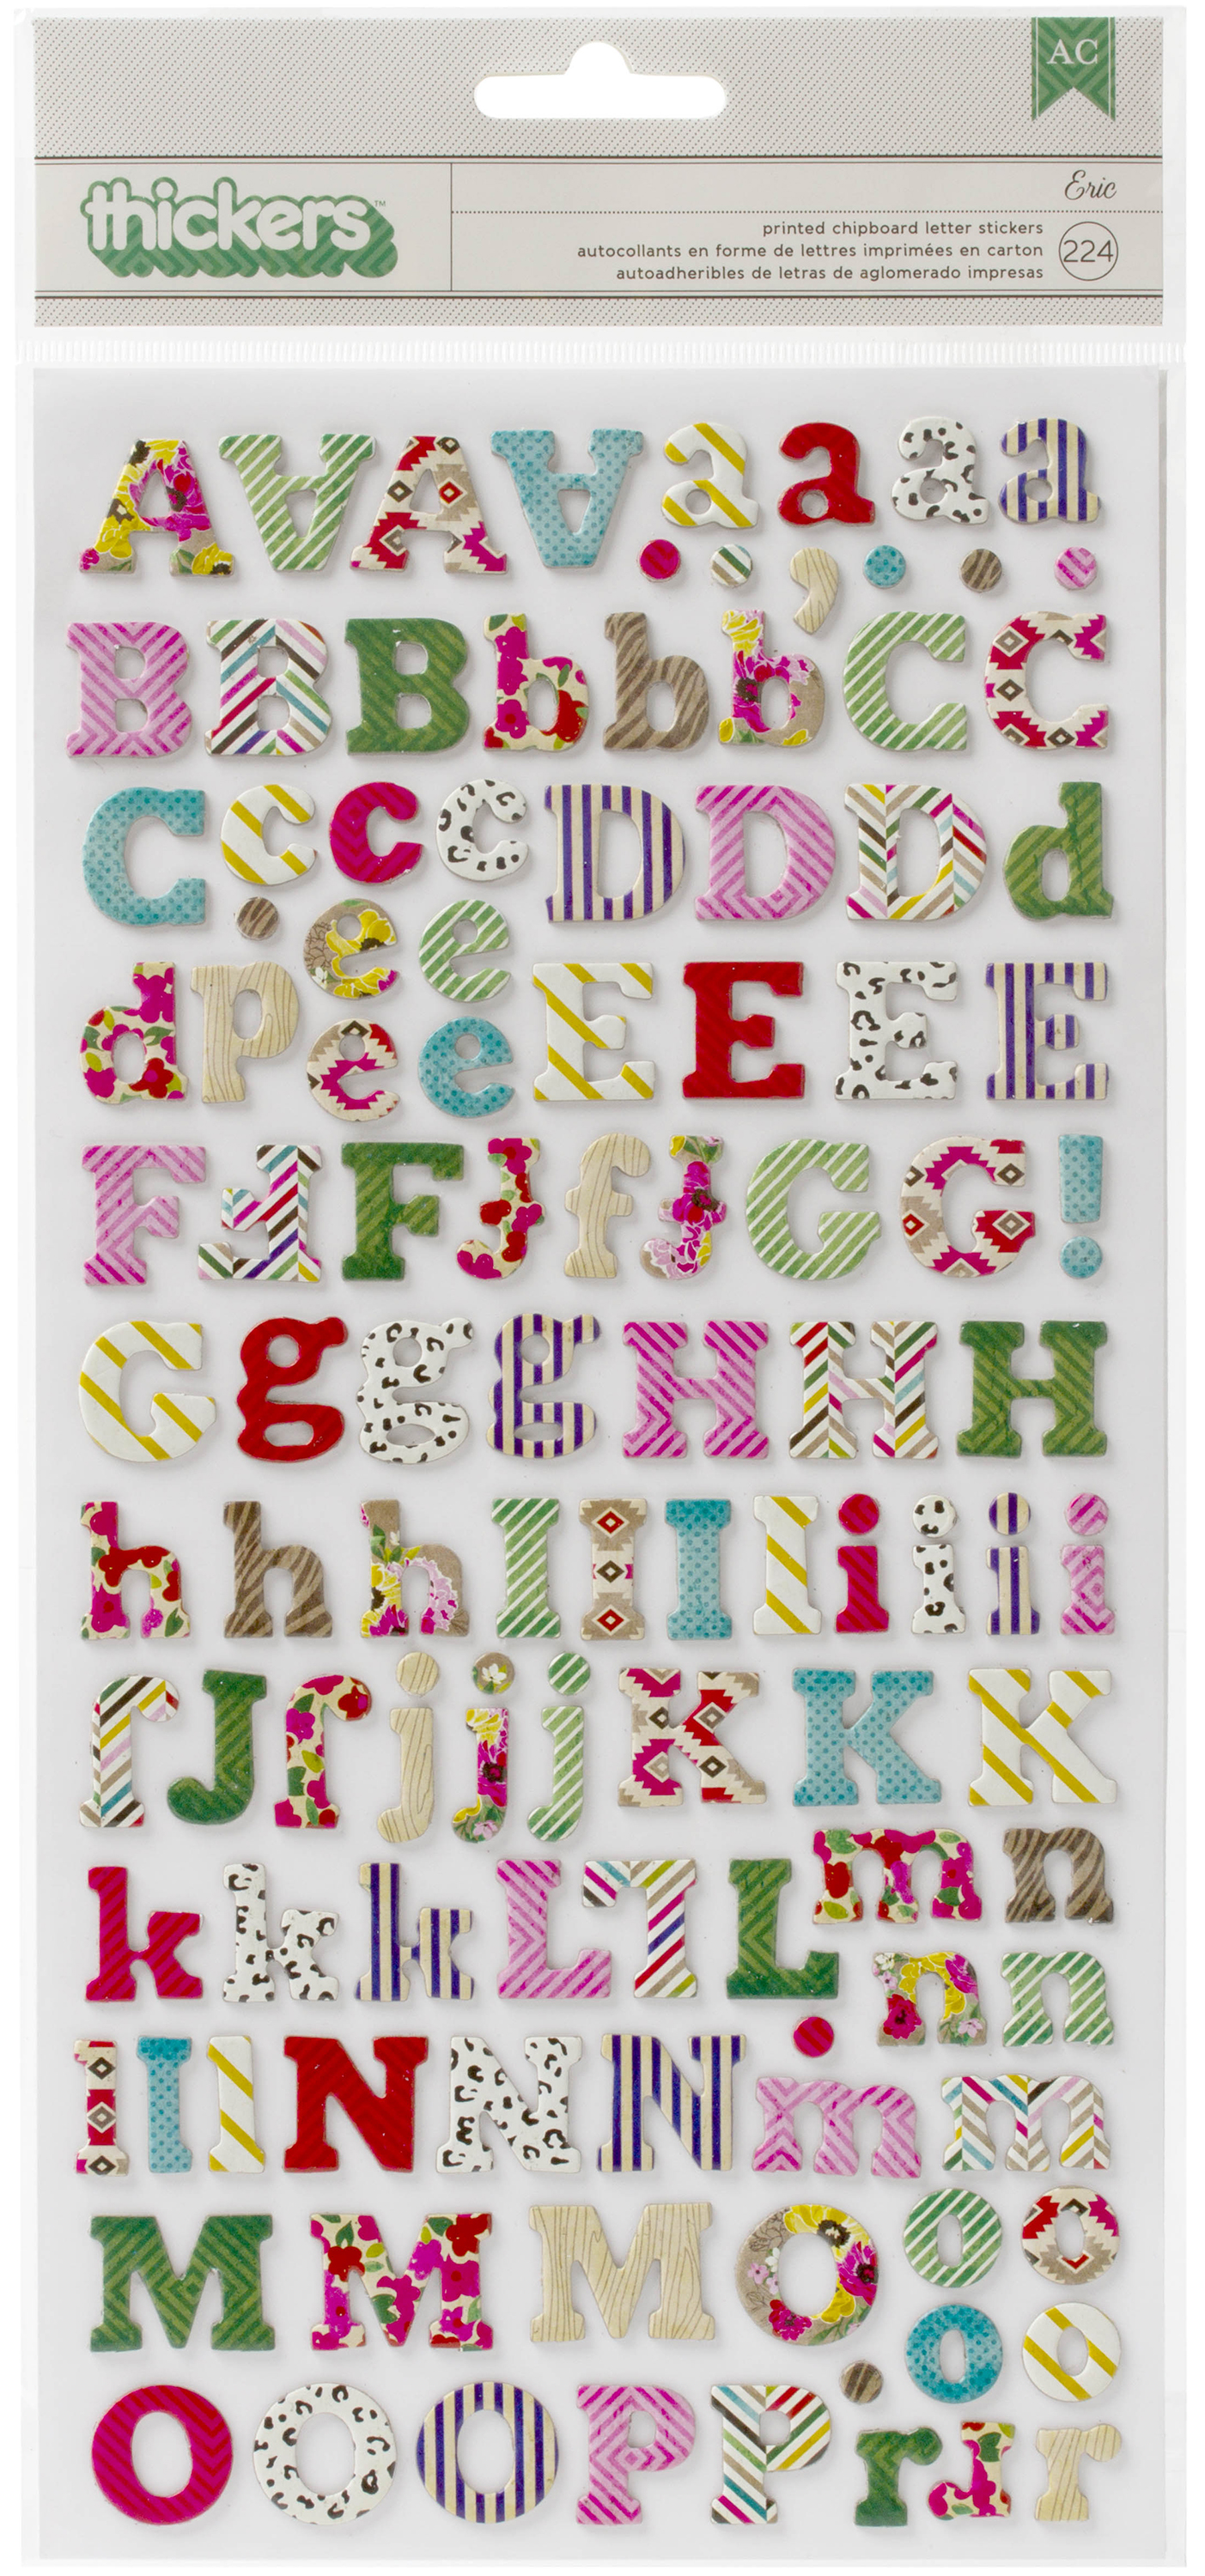 On Trend Thickers Alphabet Stickers 5.5X11 224/Pkg-Eric/Multi Print Chipboard